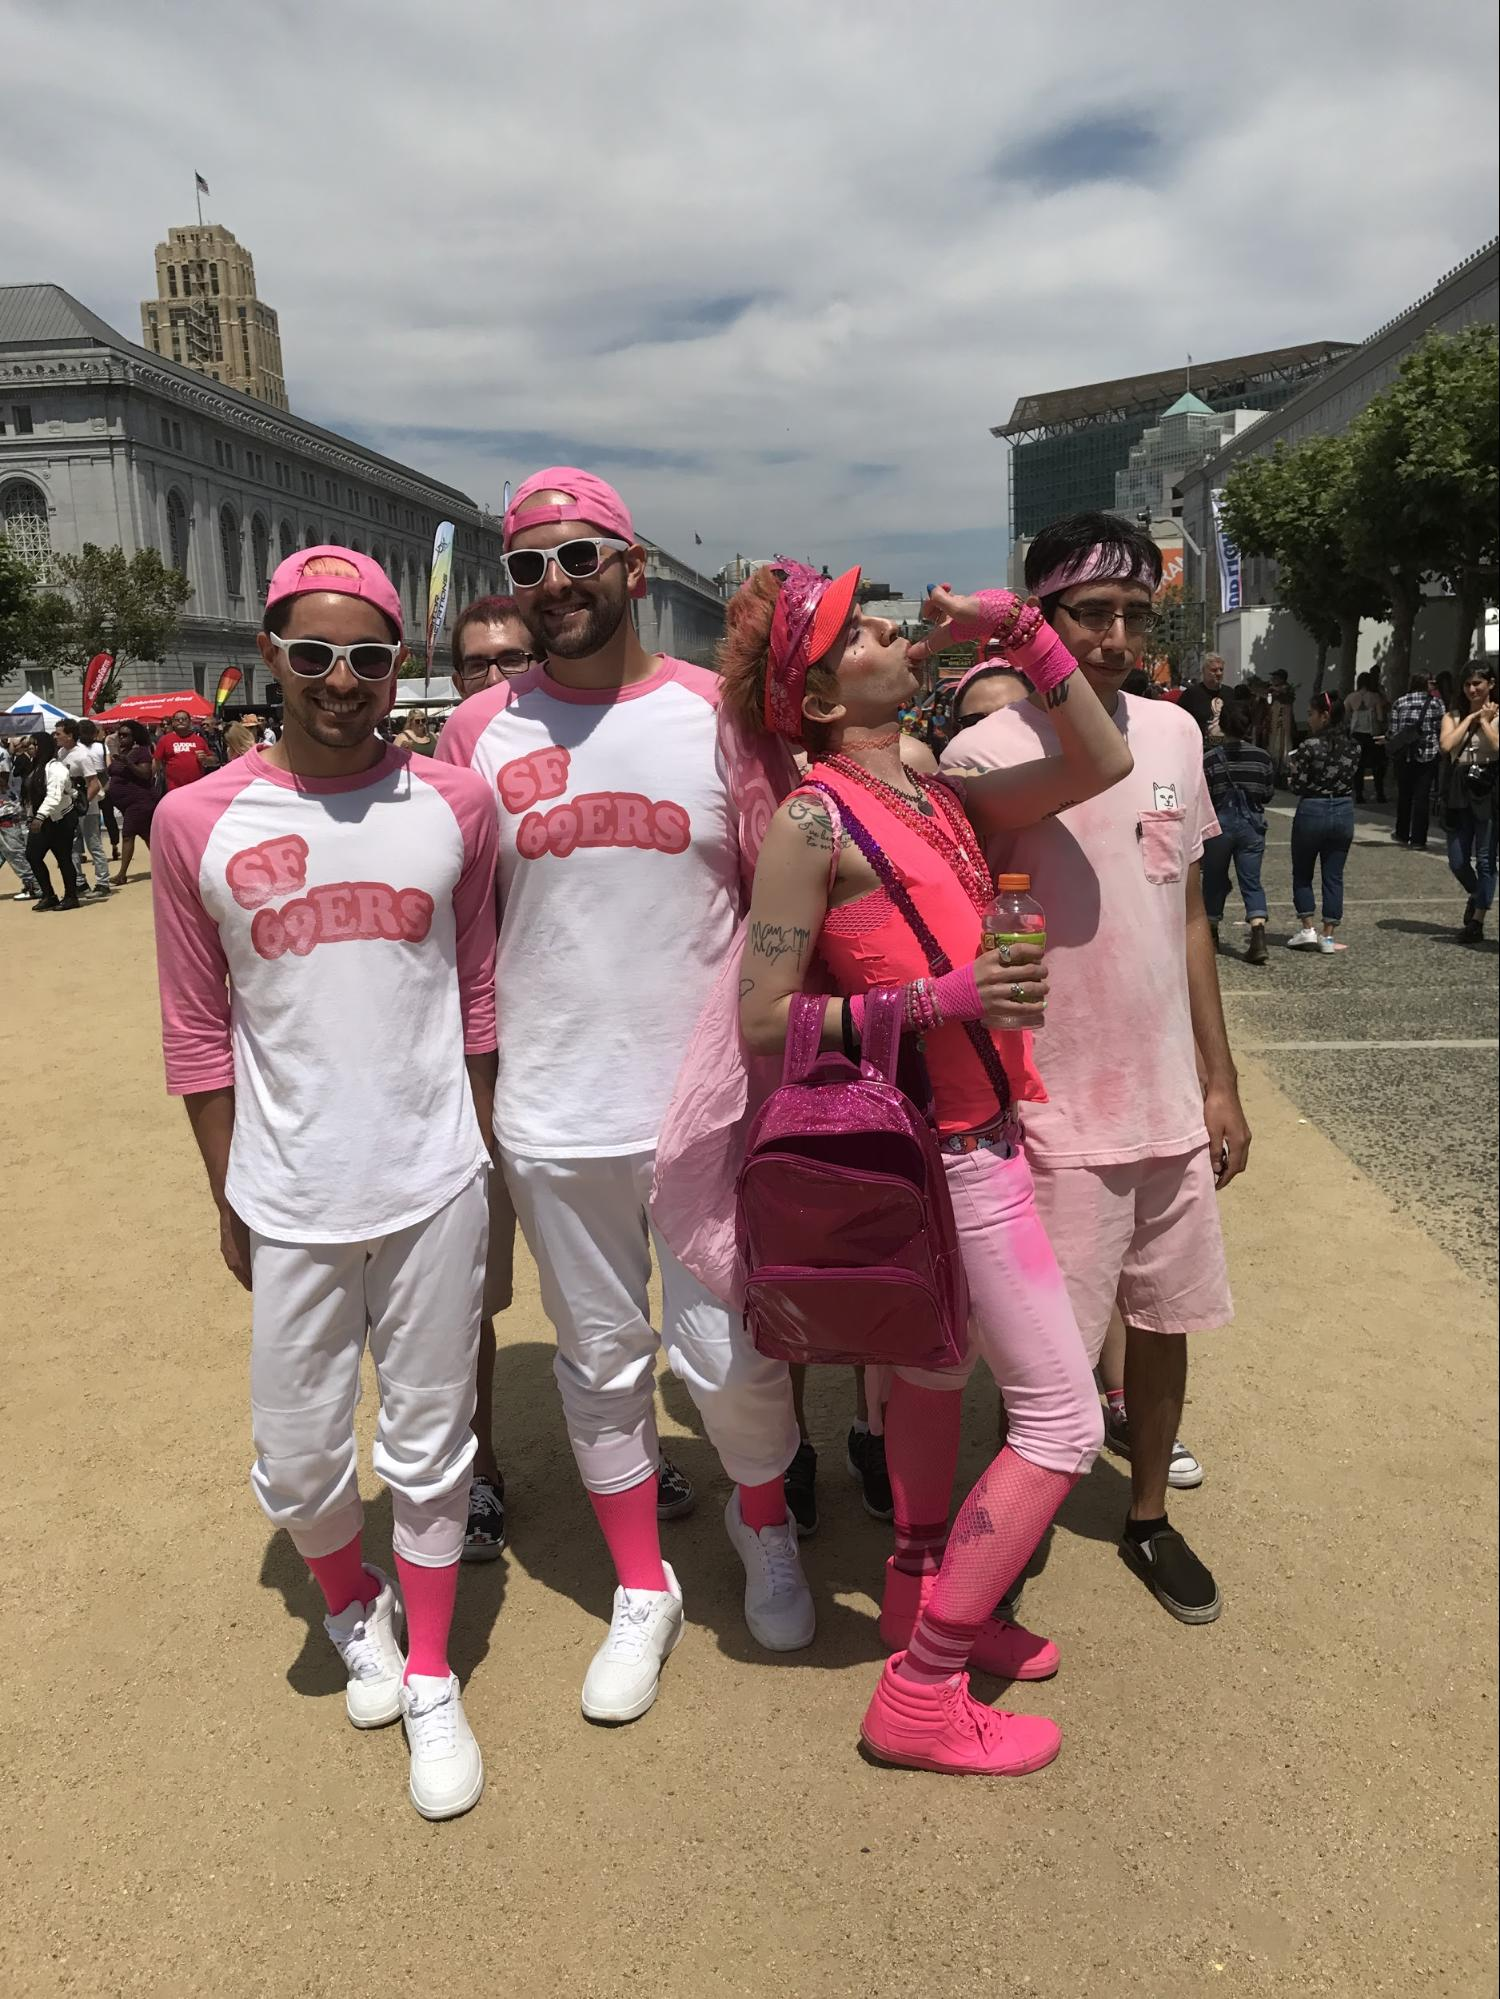 San francisco gay pride day